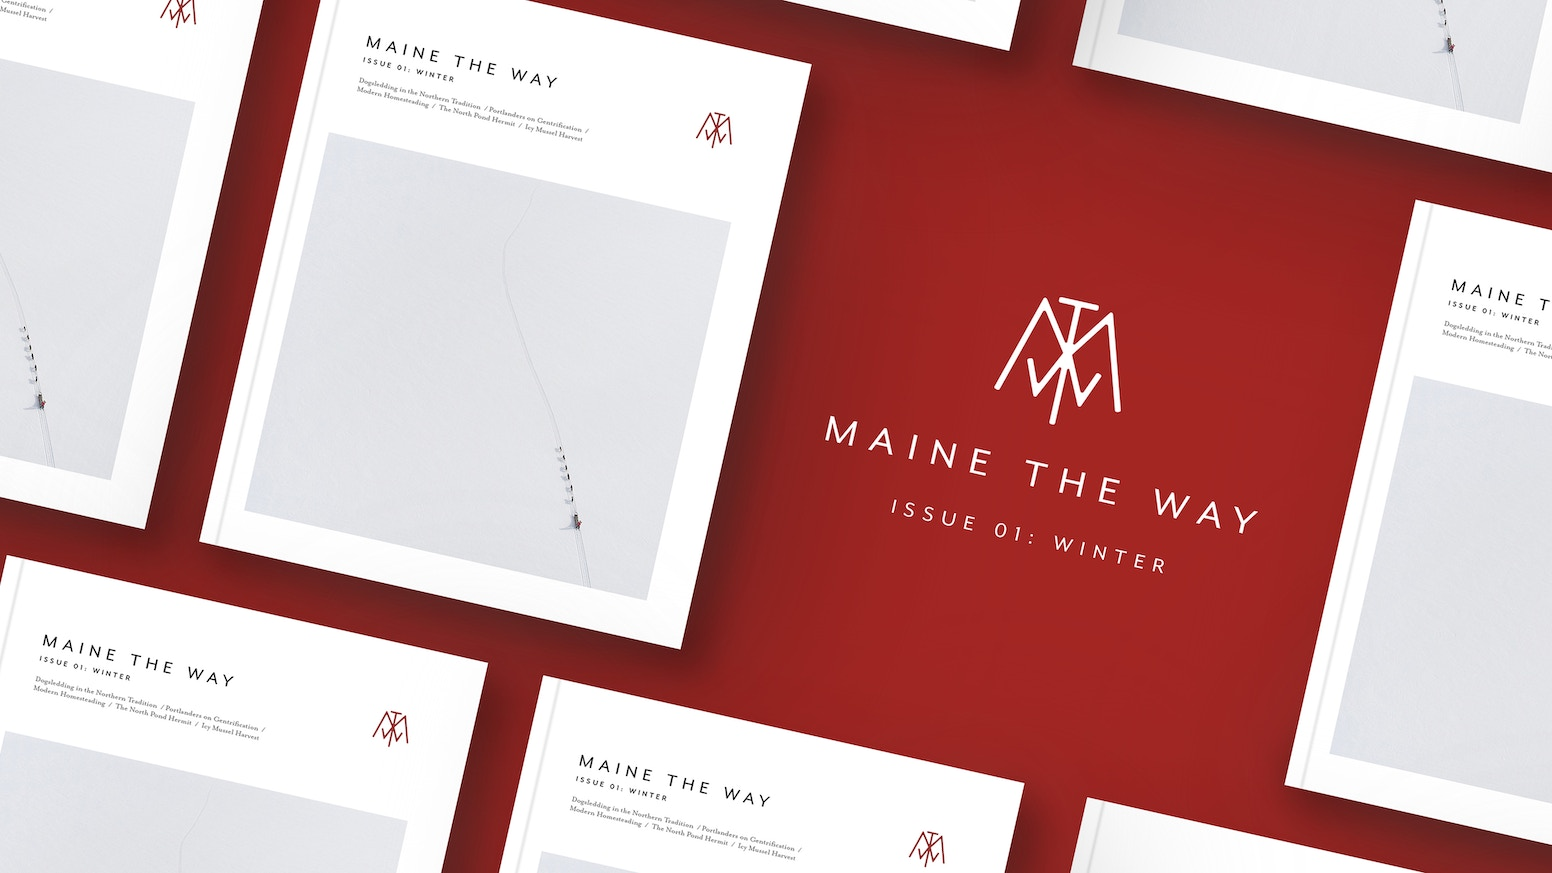 Introducing a new kind of publication about Maine.  Maine the Way is focused on high-quality art direction and long-form journalism.